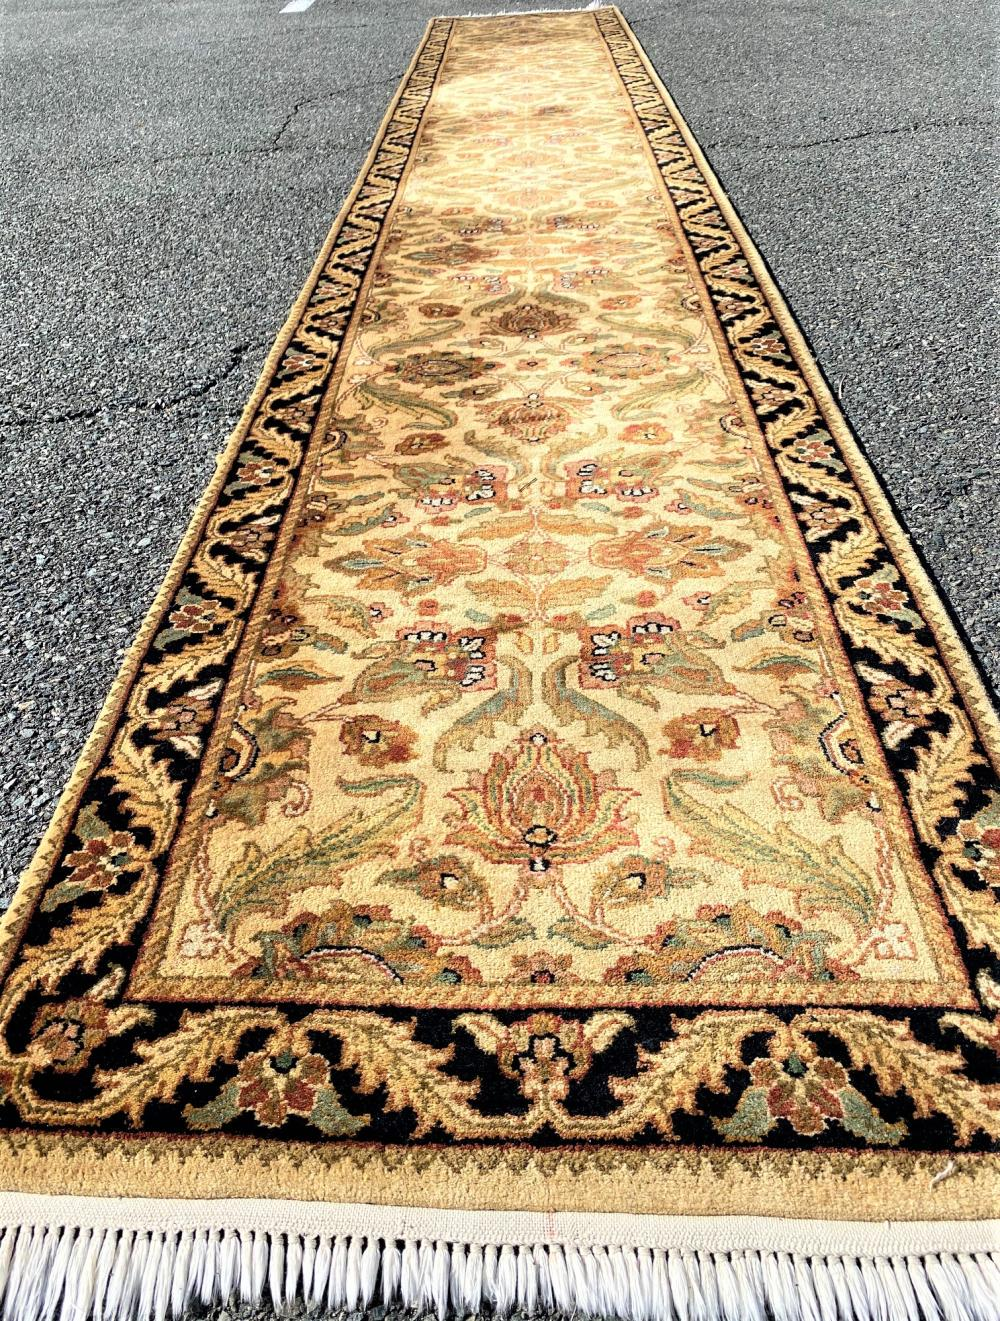 AGRA HAND KNOTTED RUNNER - 2.7 x 15.9